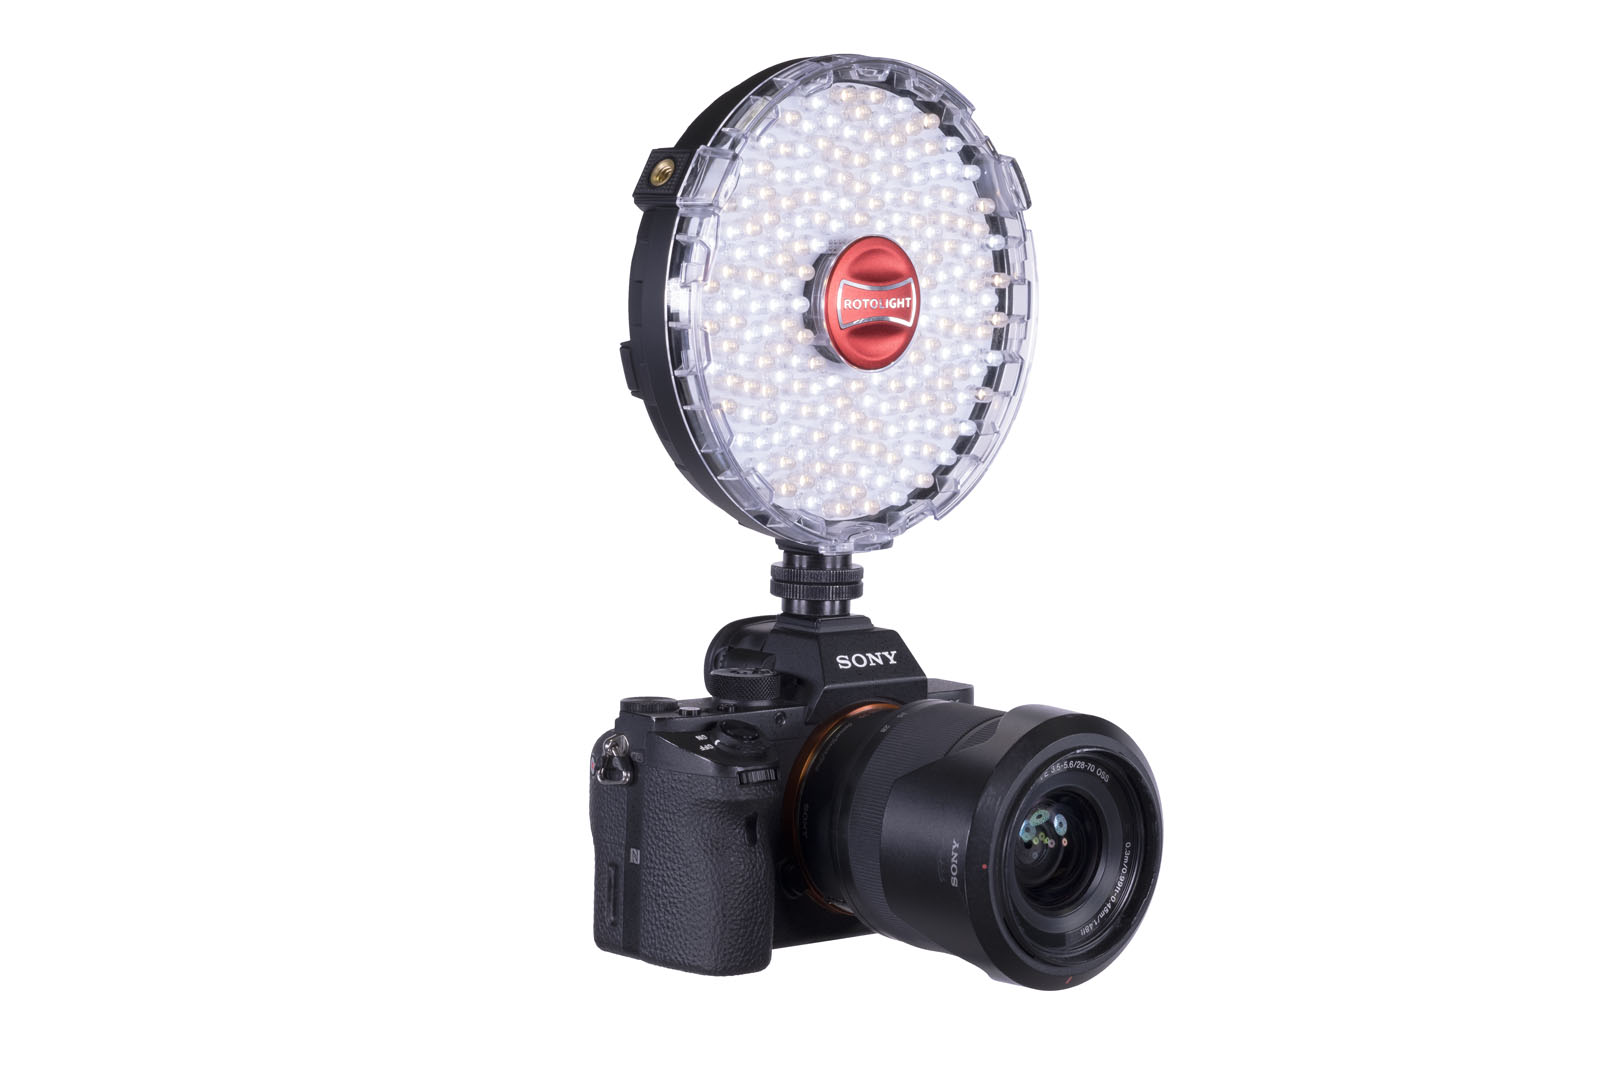 Rotolight NEO 2 LED combines the best of both continuous and